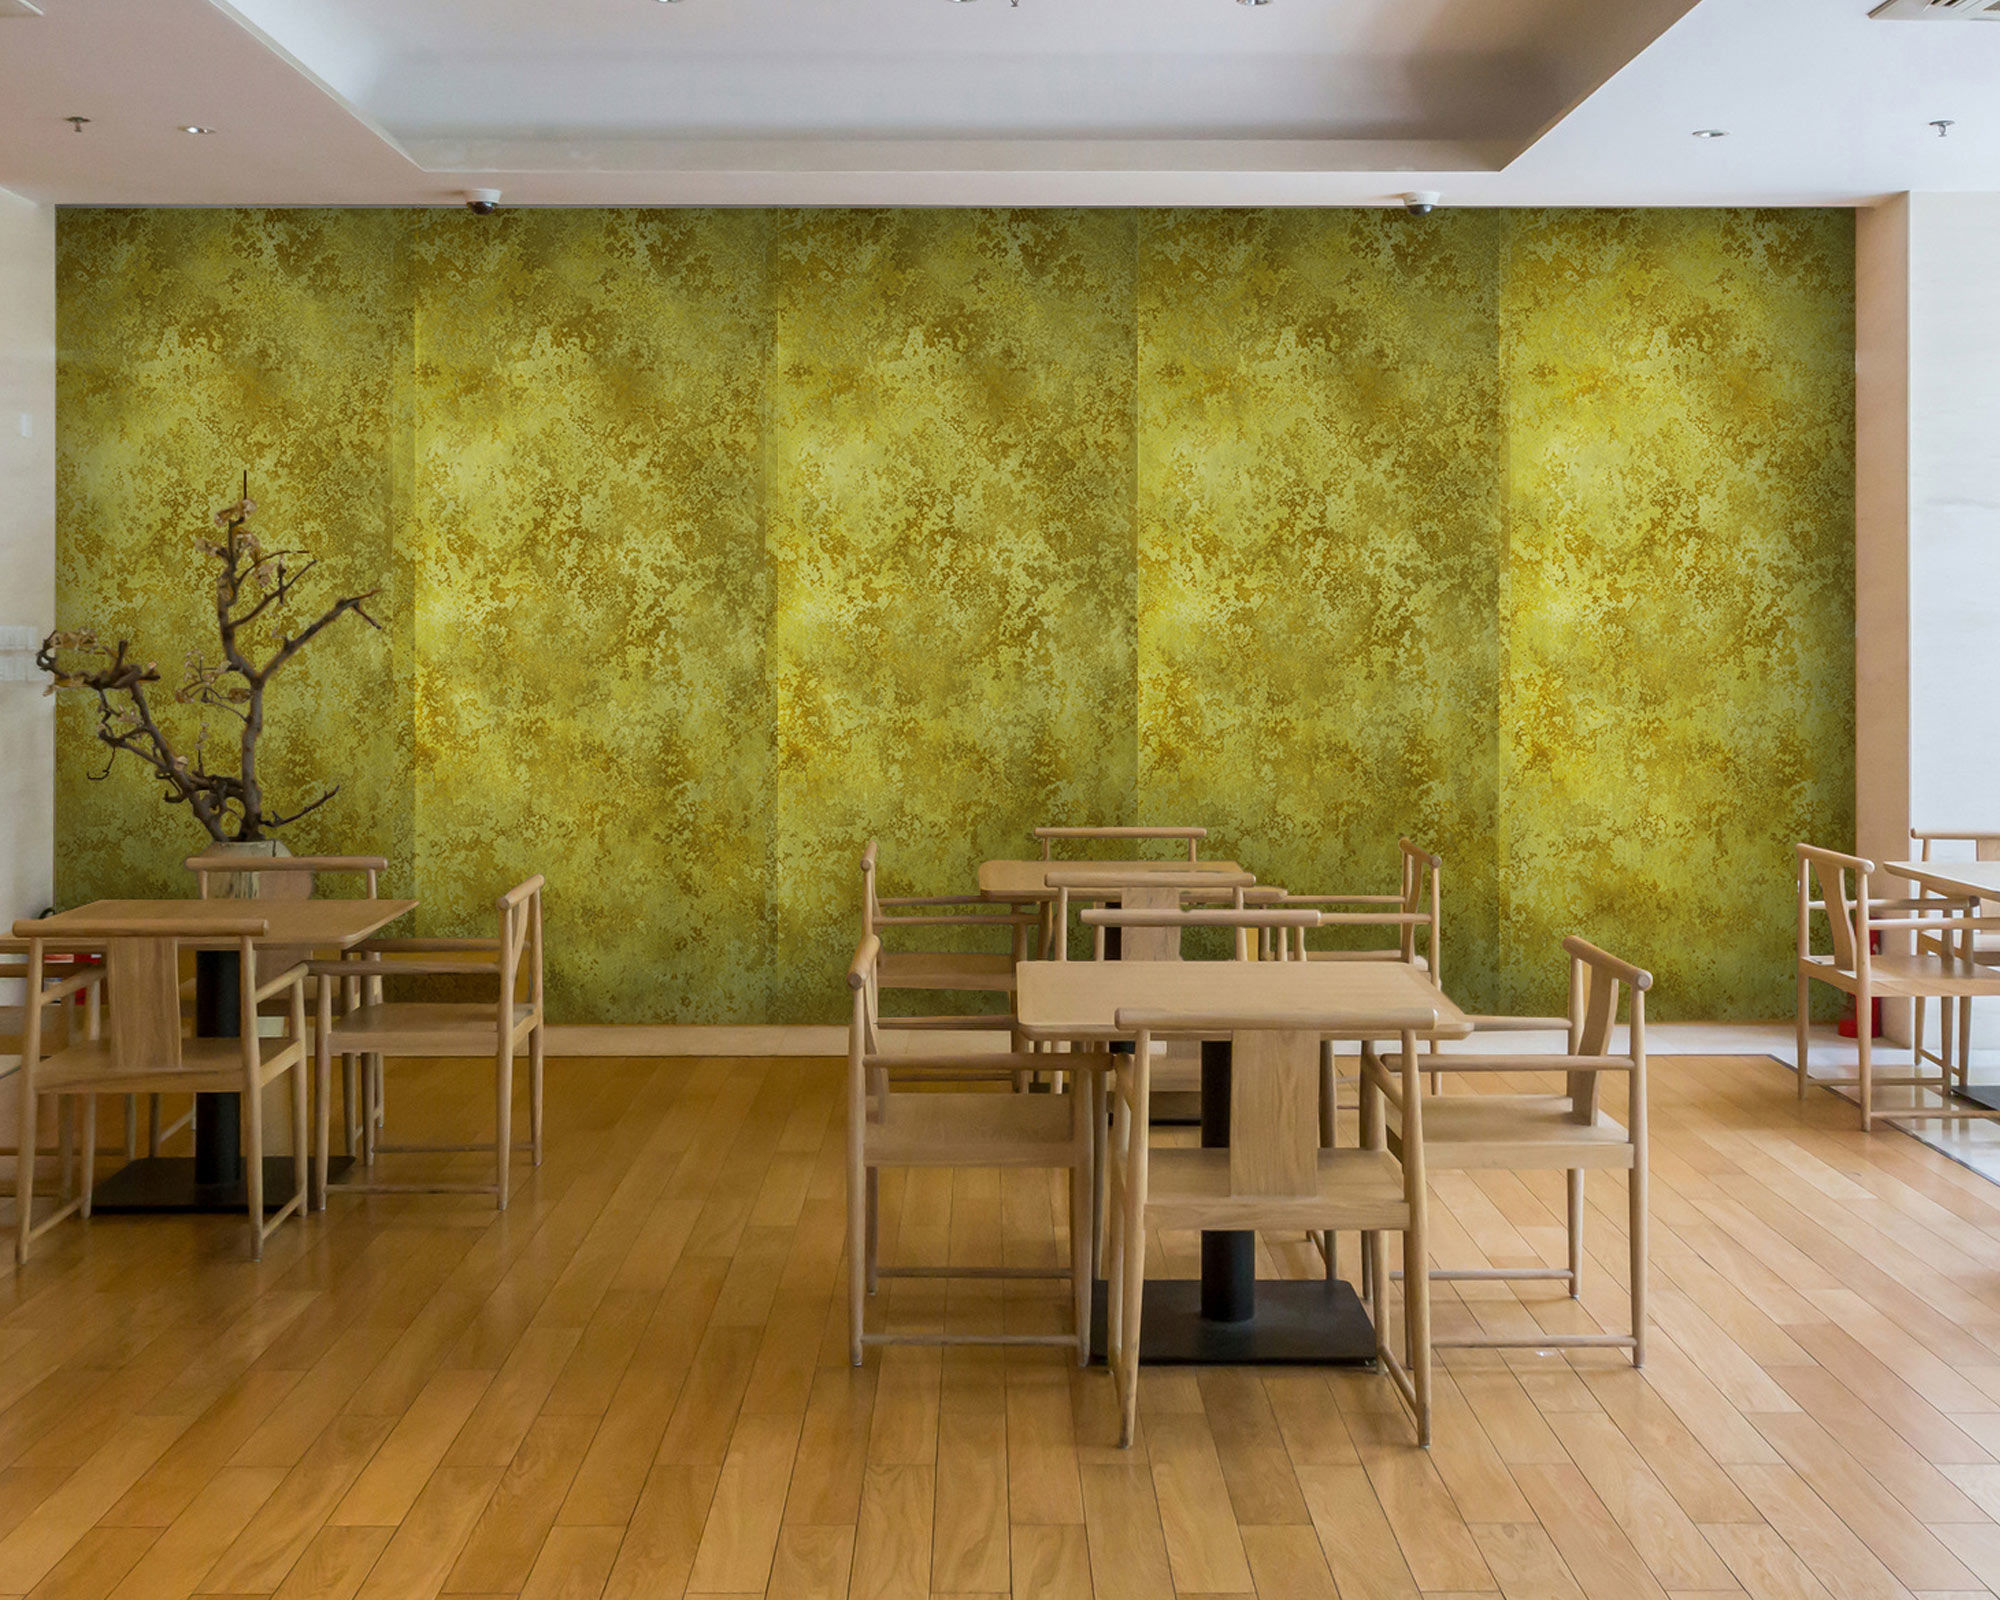 Wall Laminates Designs weatherdale pine laminate flooring on walls dining room Behind The Metal